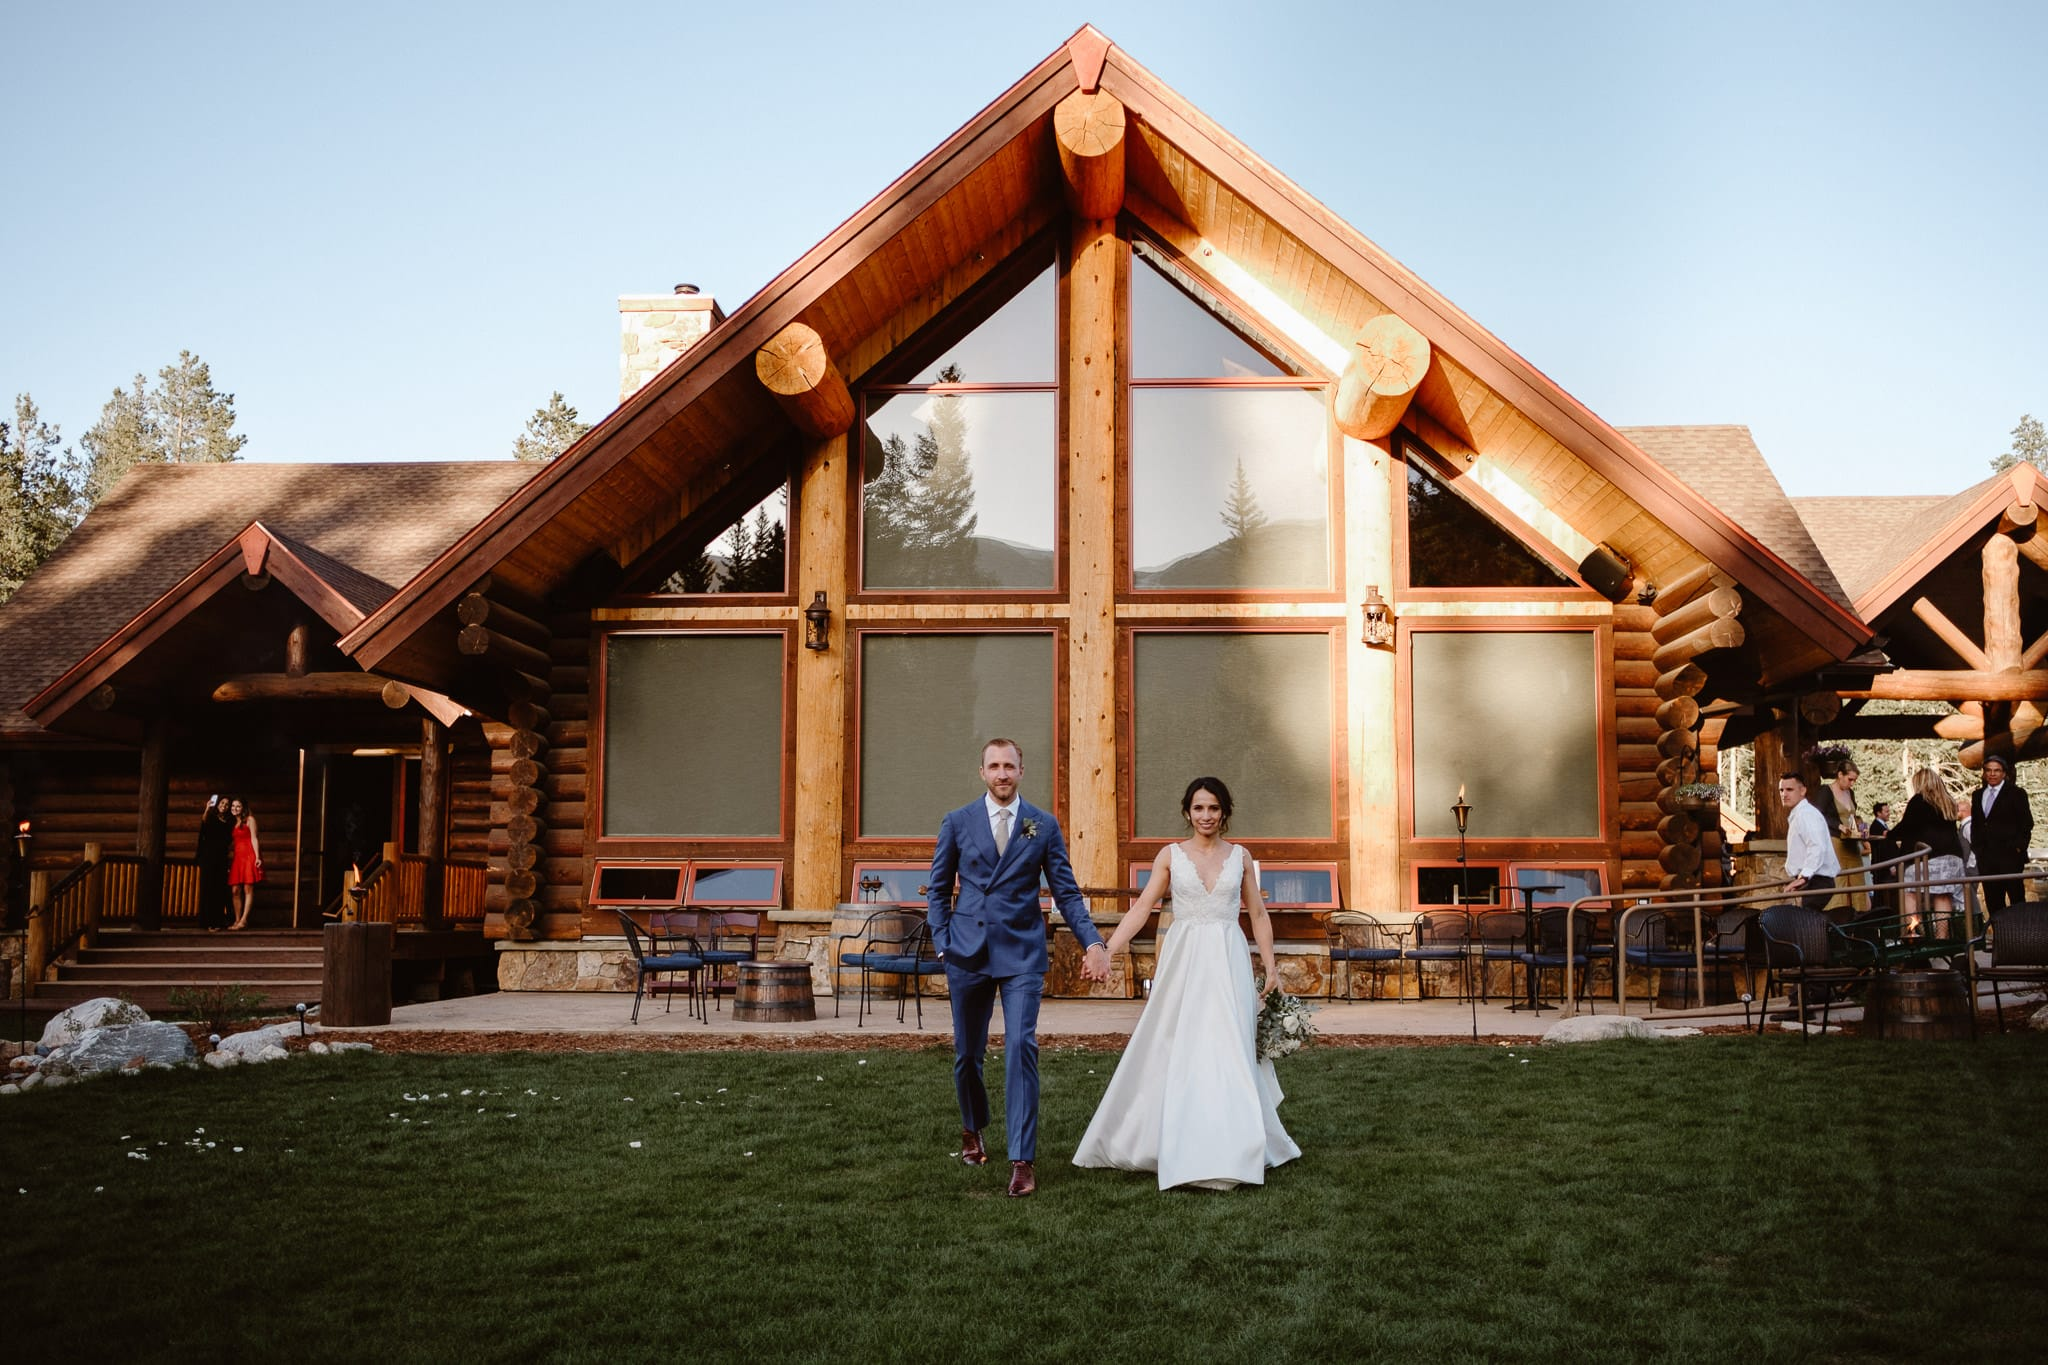 Breckenridge Nordic Center Wedding Photographer, bride and groom portraits outside log cabin